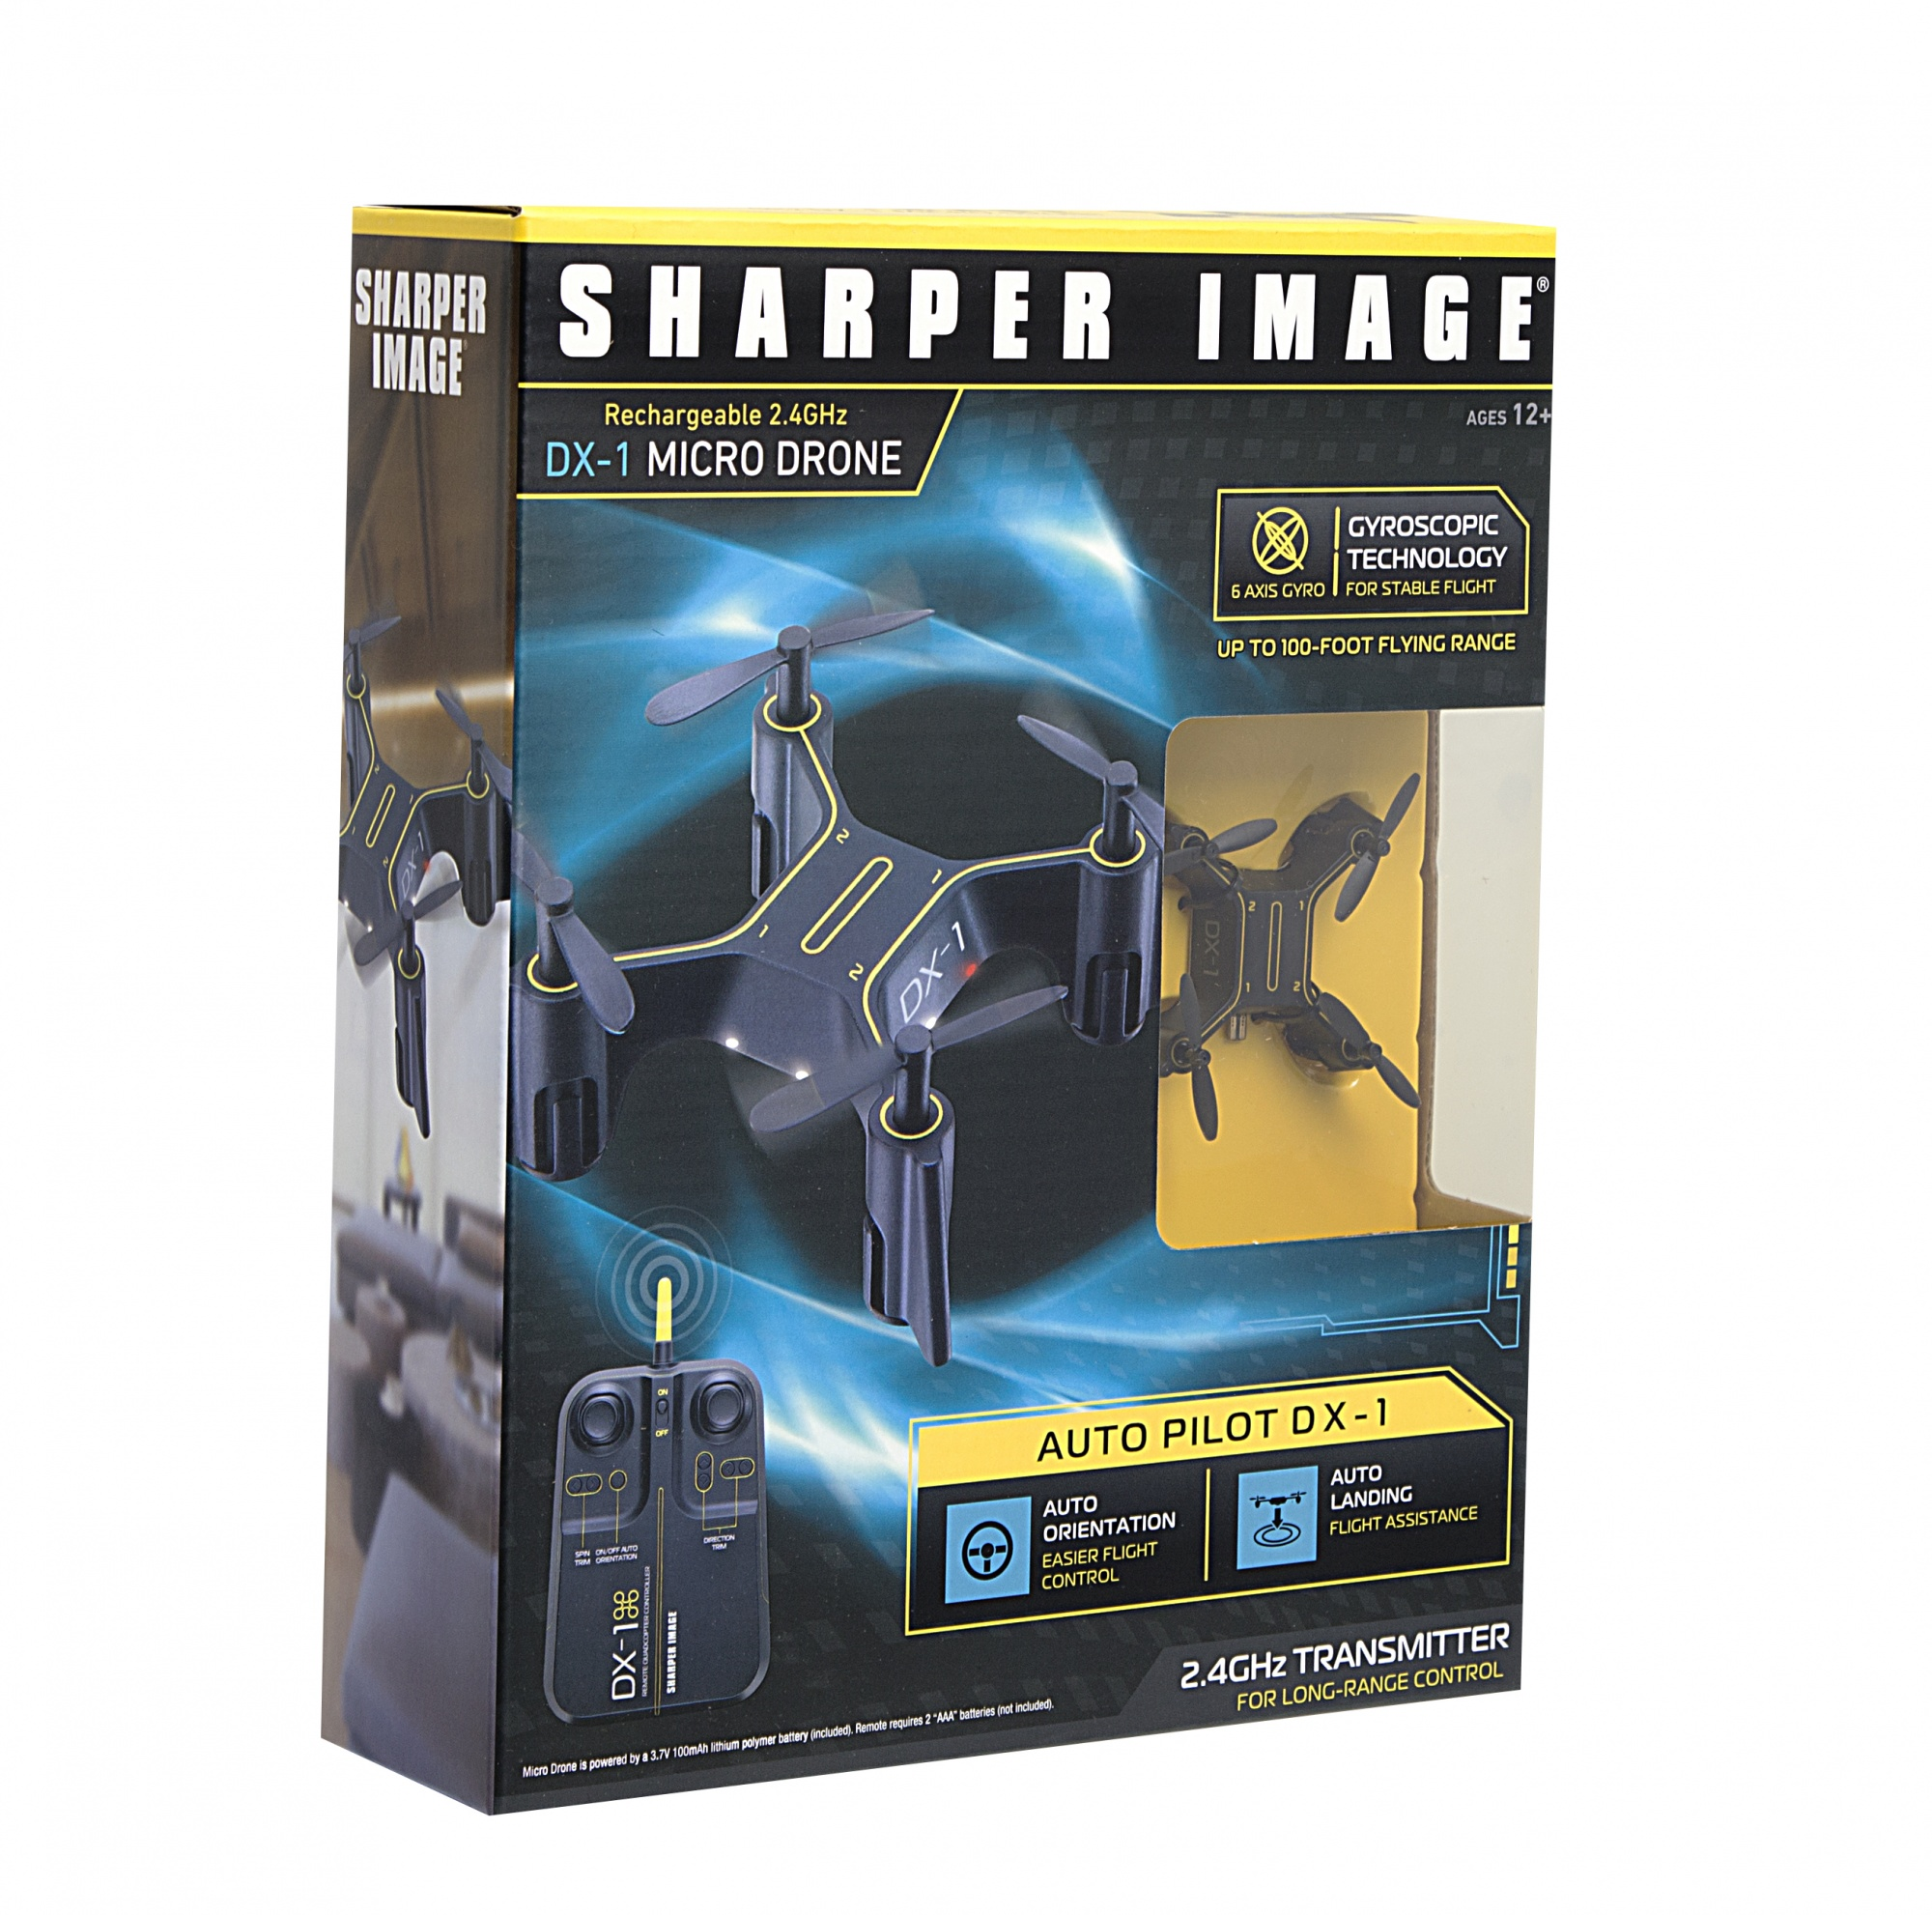 Sharper Image Drone Dx 51cm Nano By Rc Shop Online For Toys In